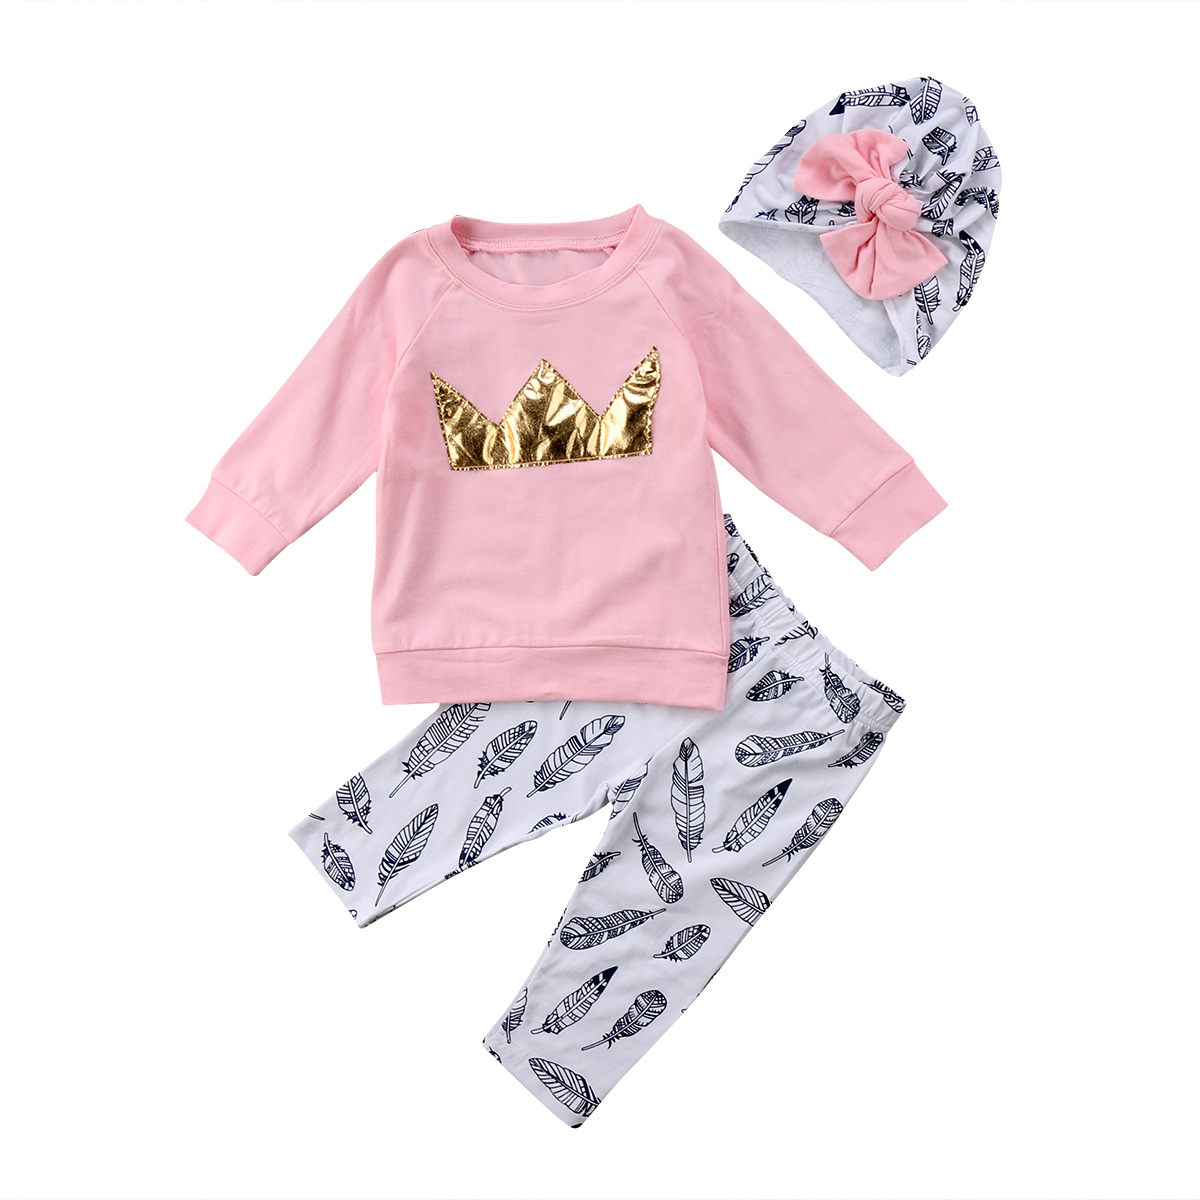 Princess Girls Clothes Set Newborn Infant Baby Girls Clothing Long Sleeve T shirts Pants Hat 2018 New Clothes For Baby Girls